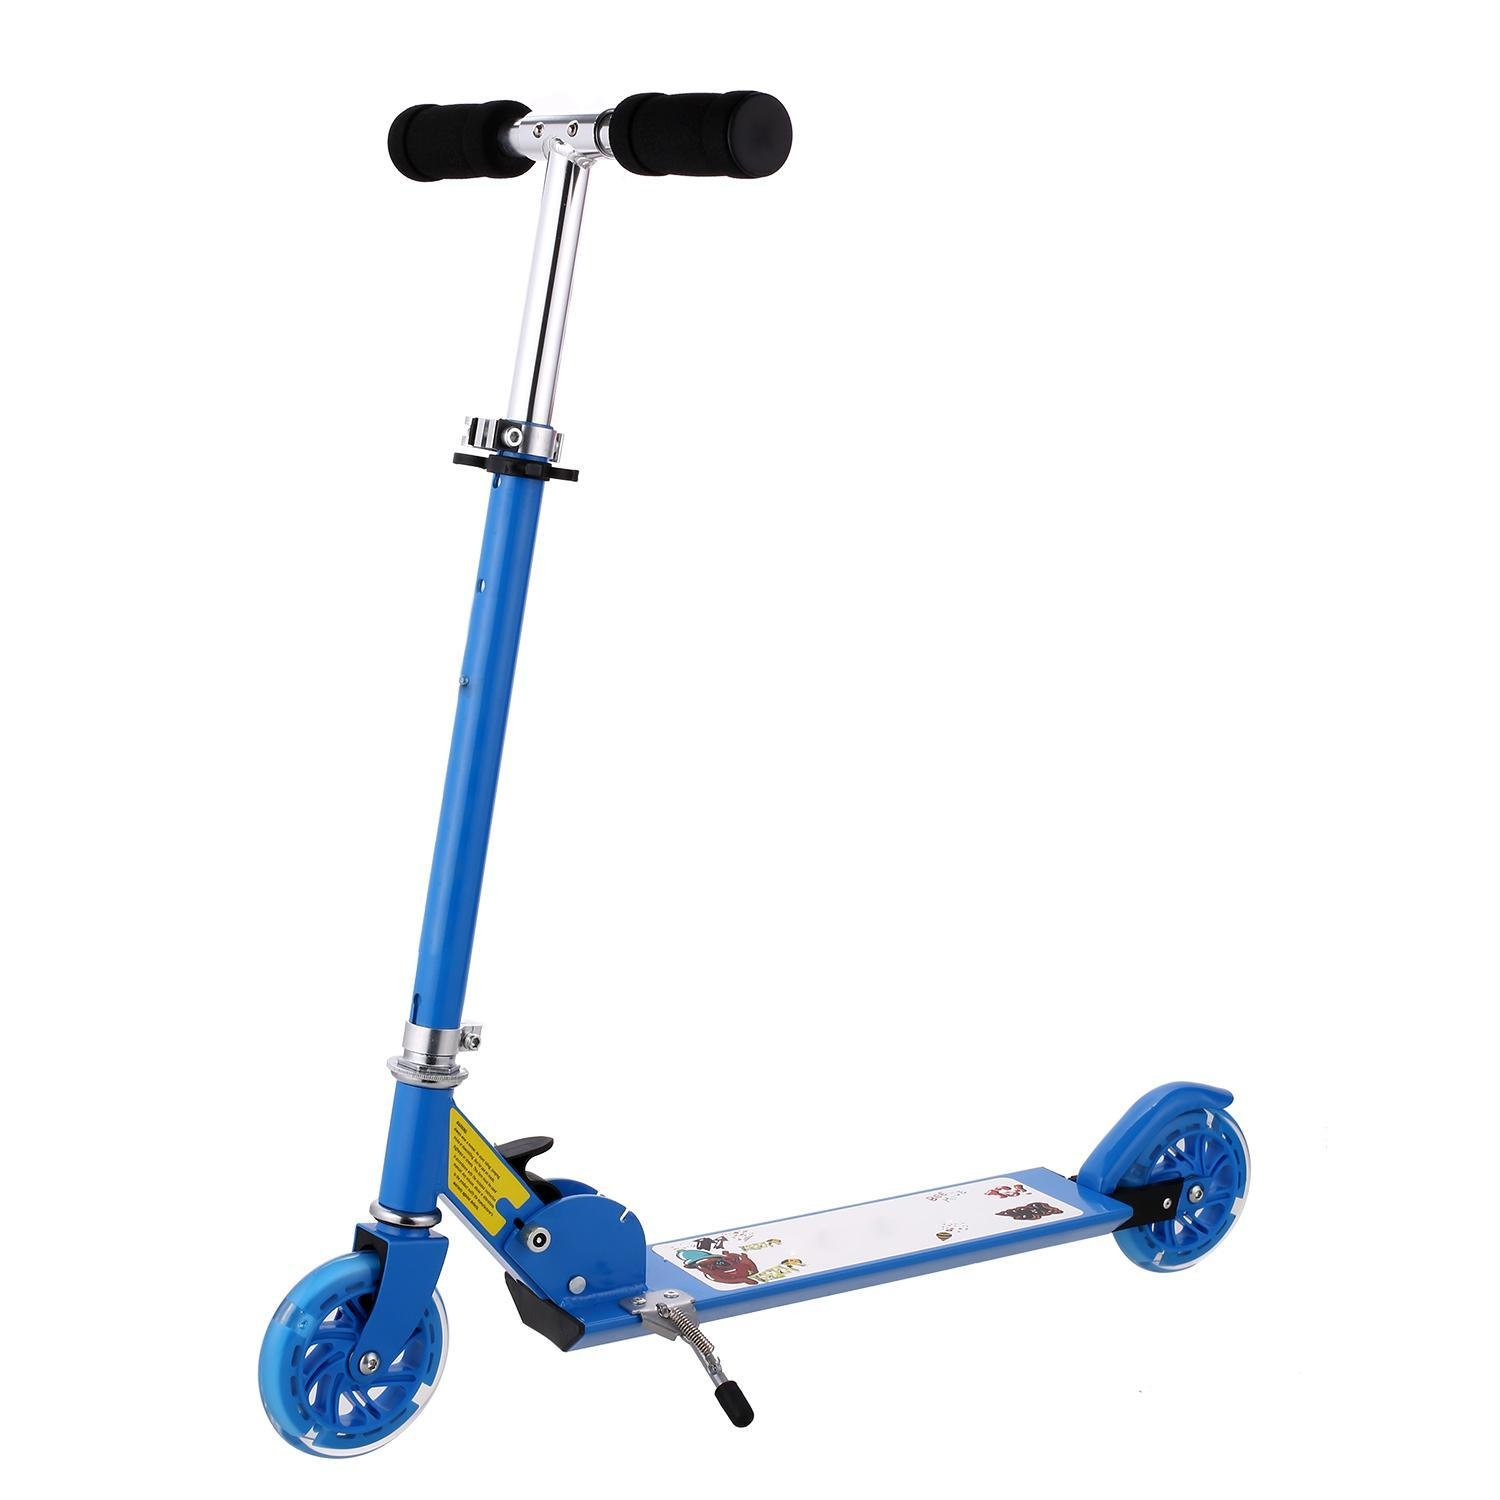 PEATAO Kick Scooter for Kids, Foldable Adjustable Height Lighted Wheel Kick Scooter 88 LBS Weight Limit (US STOCK)